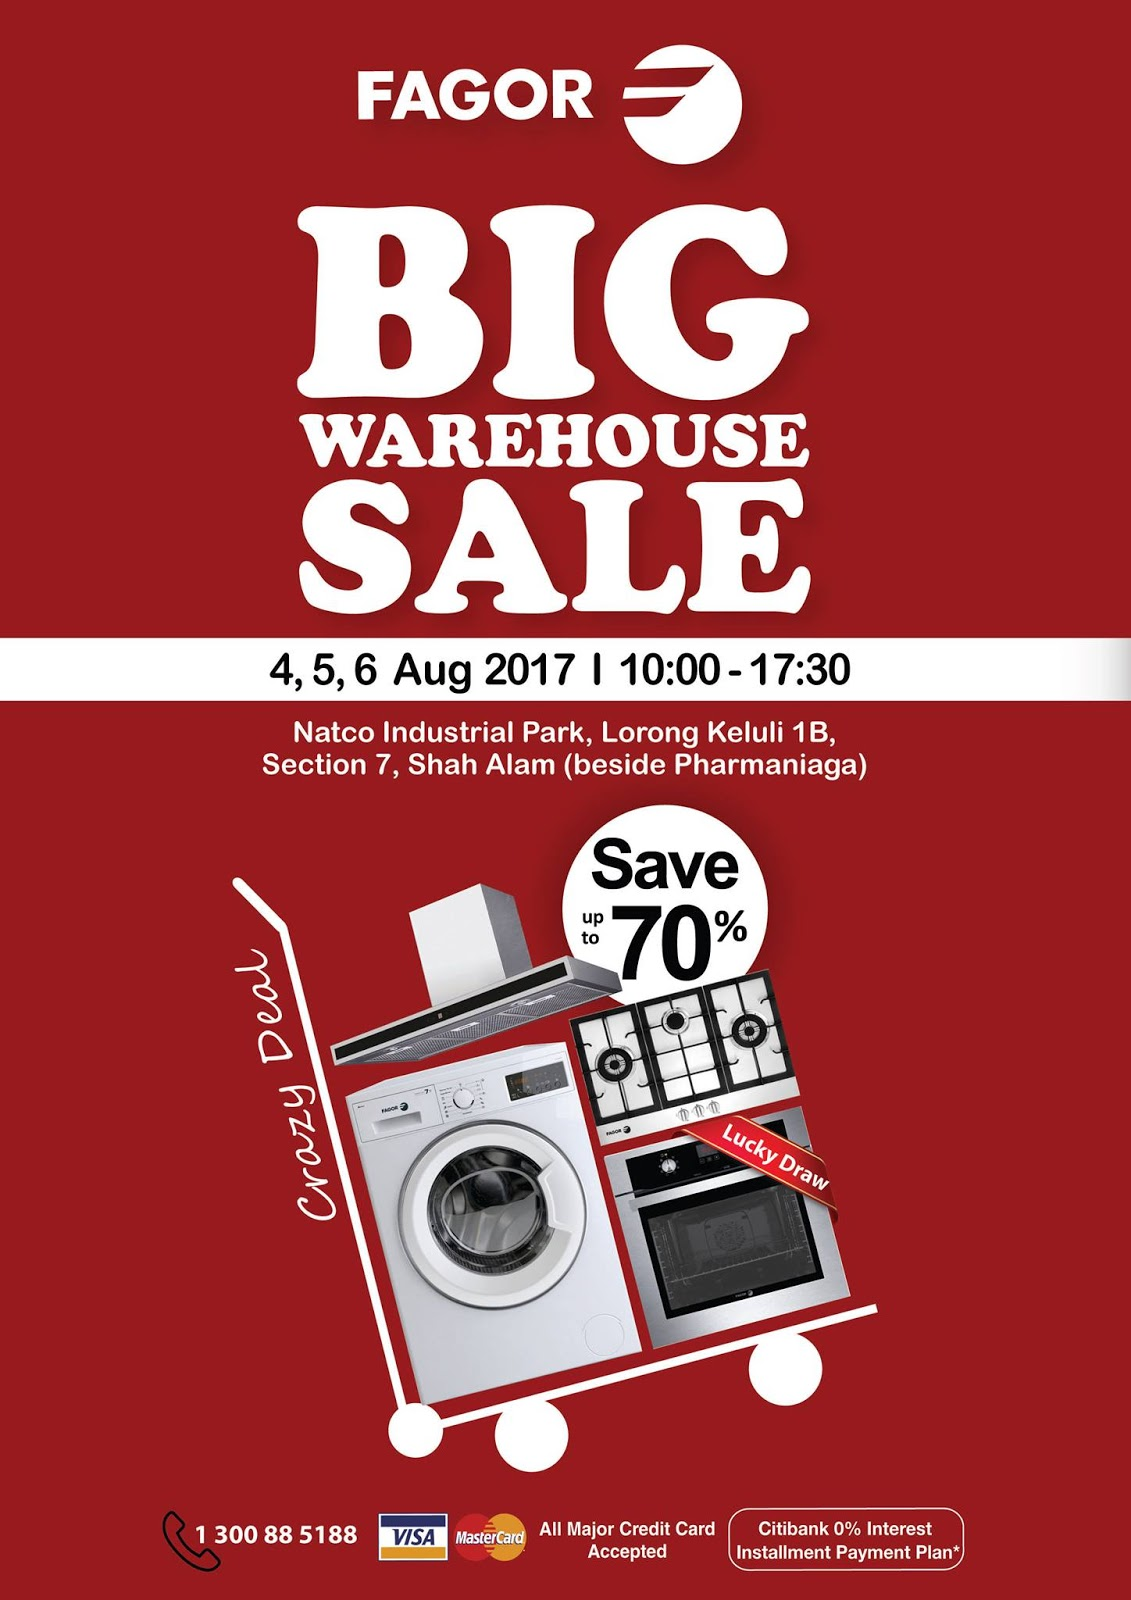 Appliances Discount Fagor Warehouse Sale Up To 70 Discount On Home Appliances Shah